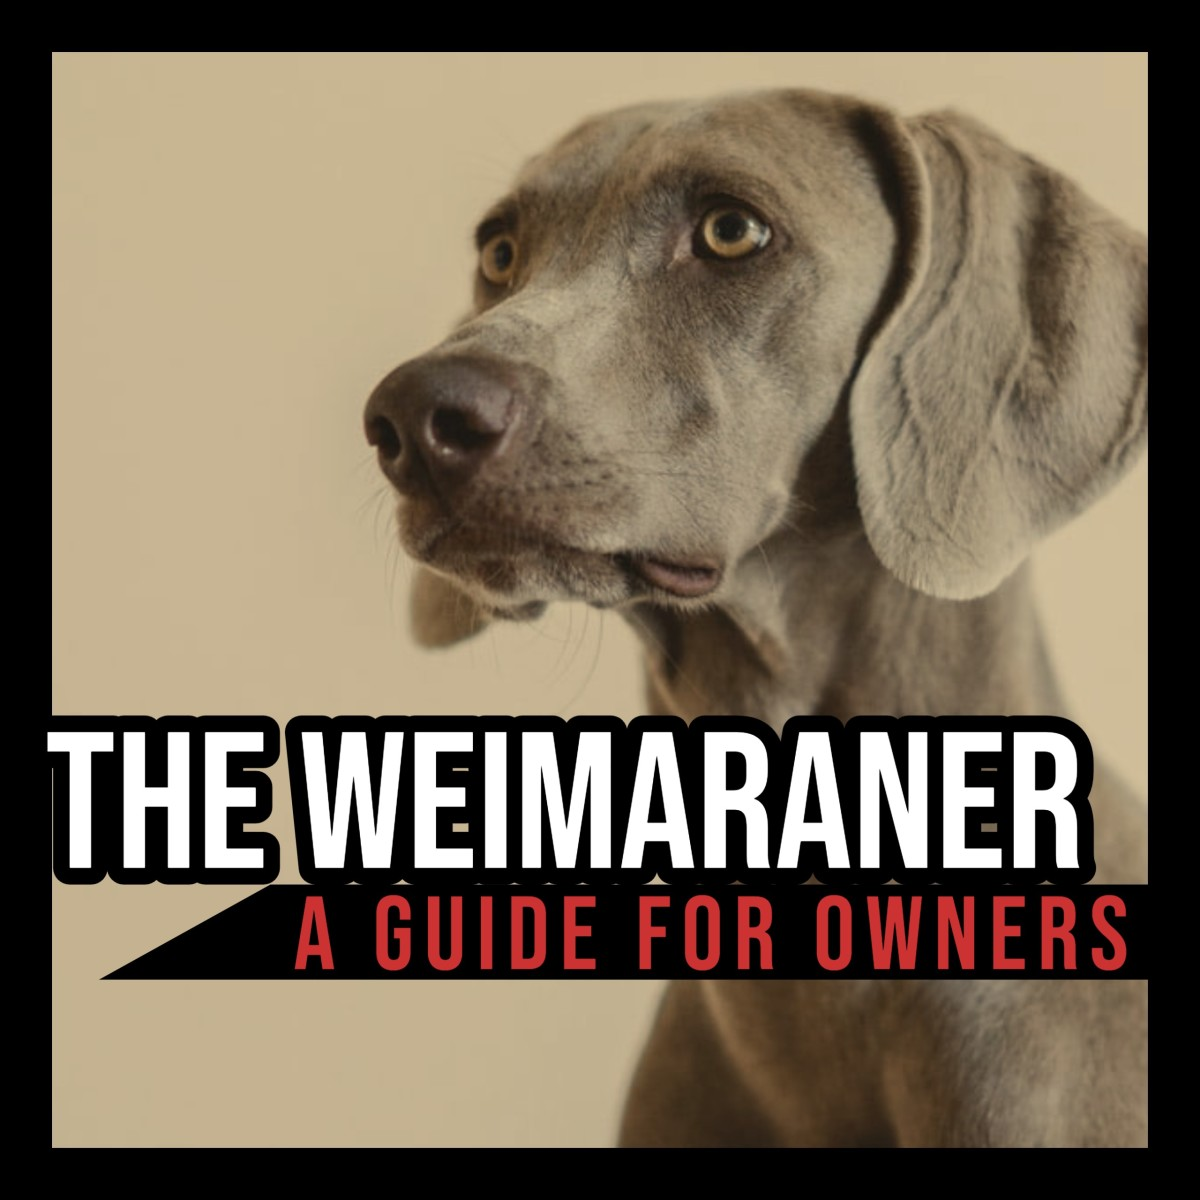 The Weimaraner: A Guide for Owners